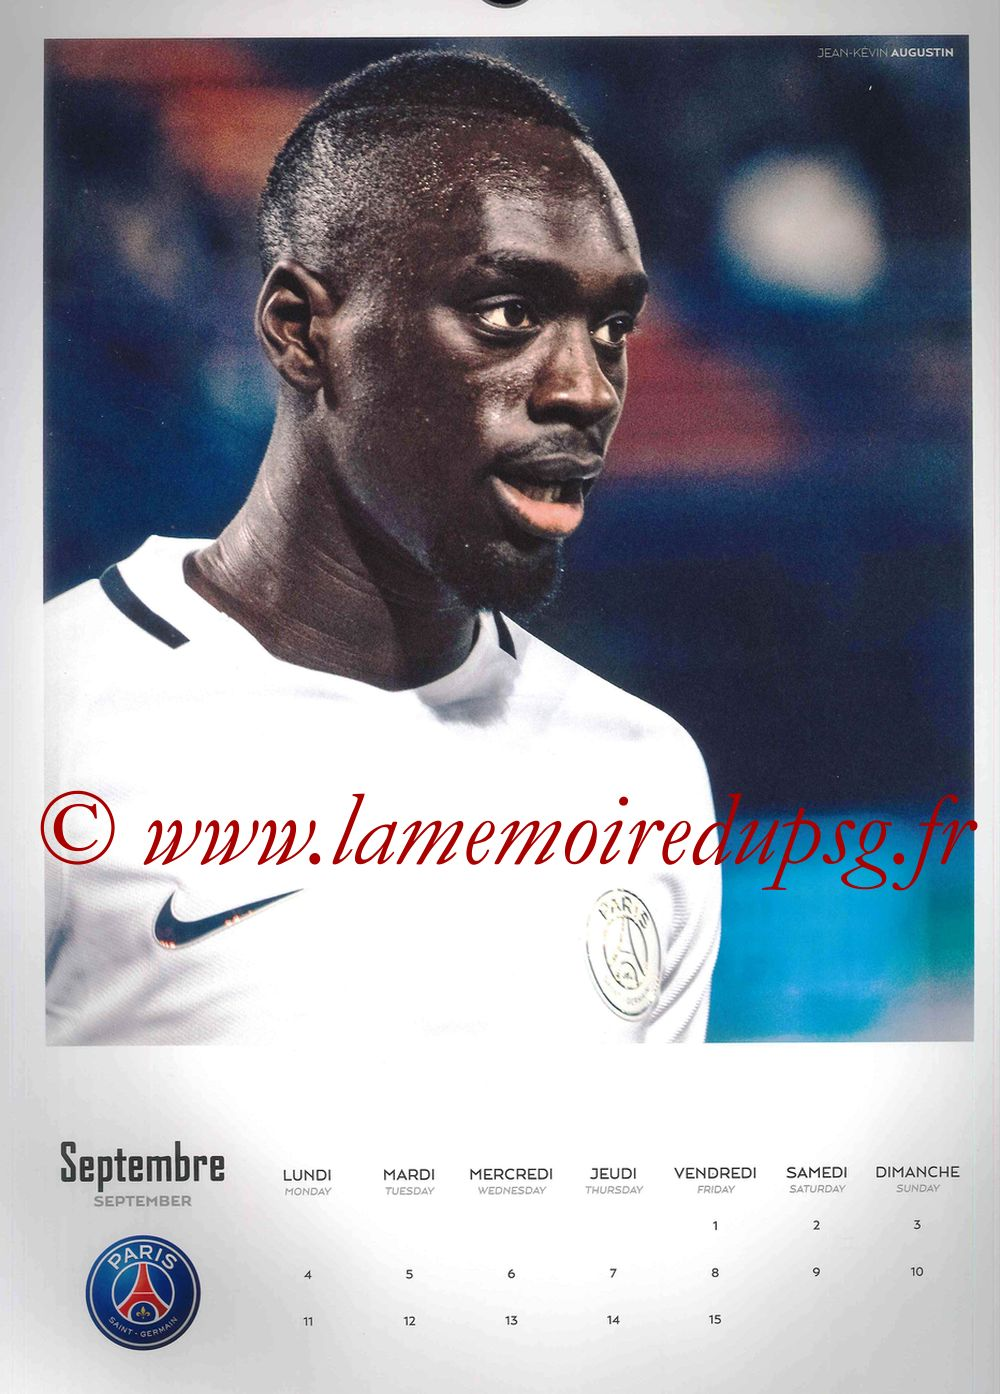 Calendrier PSG 2017 - Page 17 - Jean-Kévin AUGUSTIN